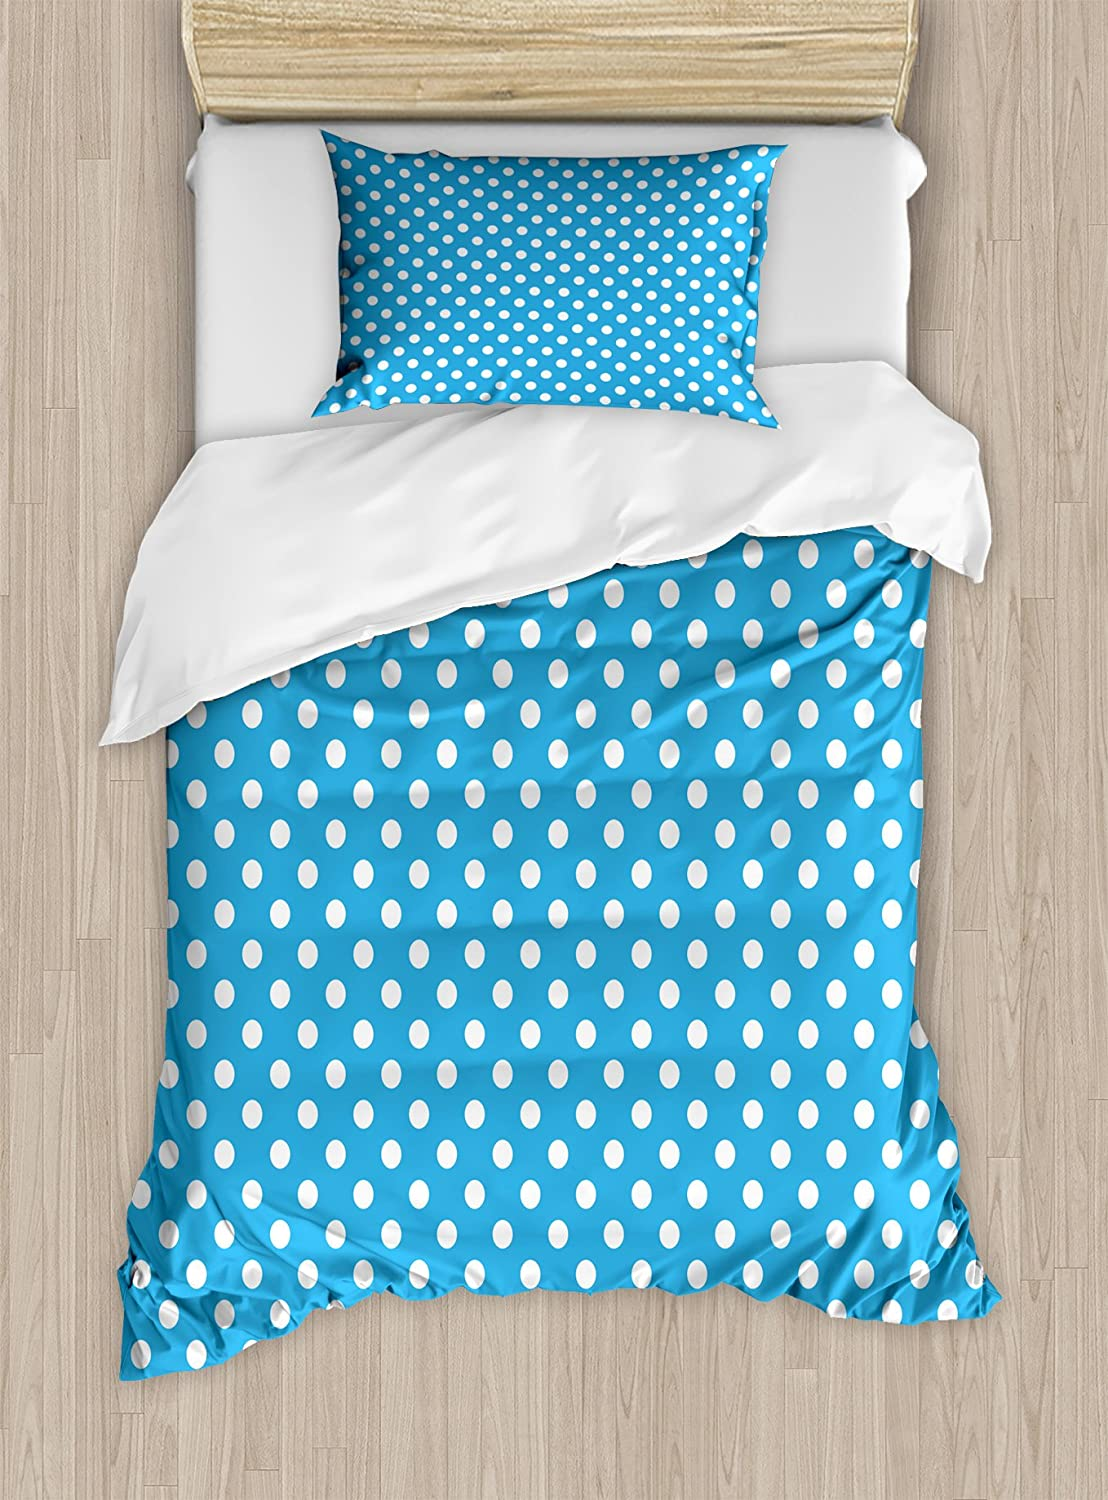 Decorative 3 Piece Bedding Set with 2 Pillow Shams Blue White Ambesonne Blue Duvet Cover Set Queen Size Retro Style Pattern with Little White Polka Dots Geometrical Vintage Inspirations